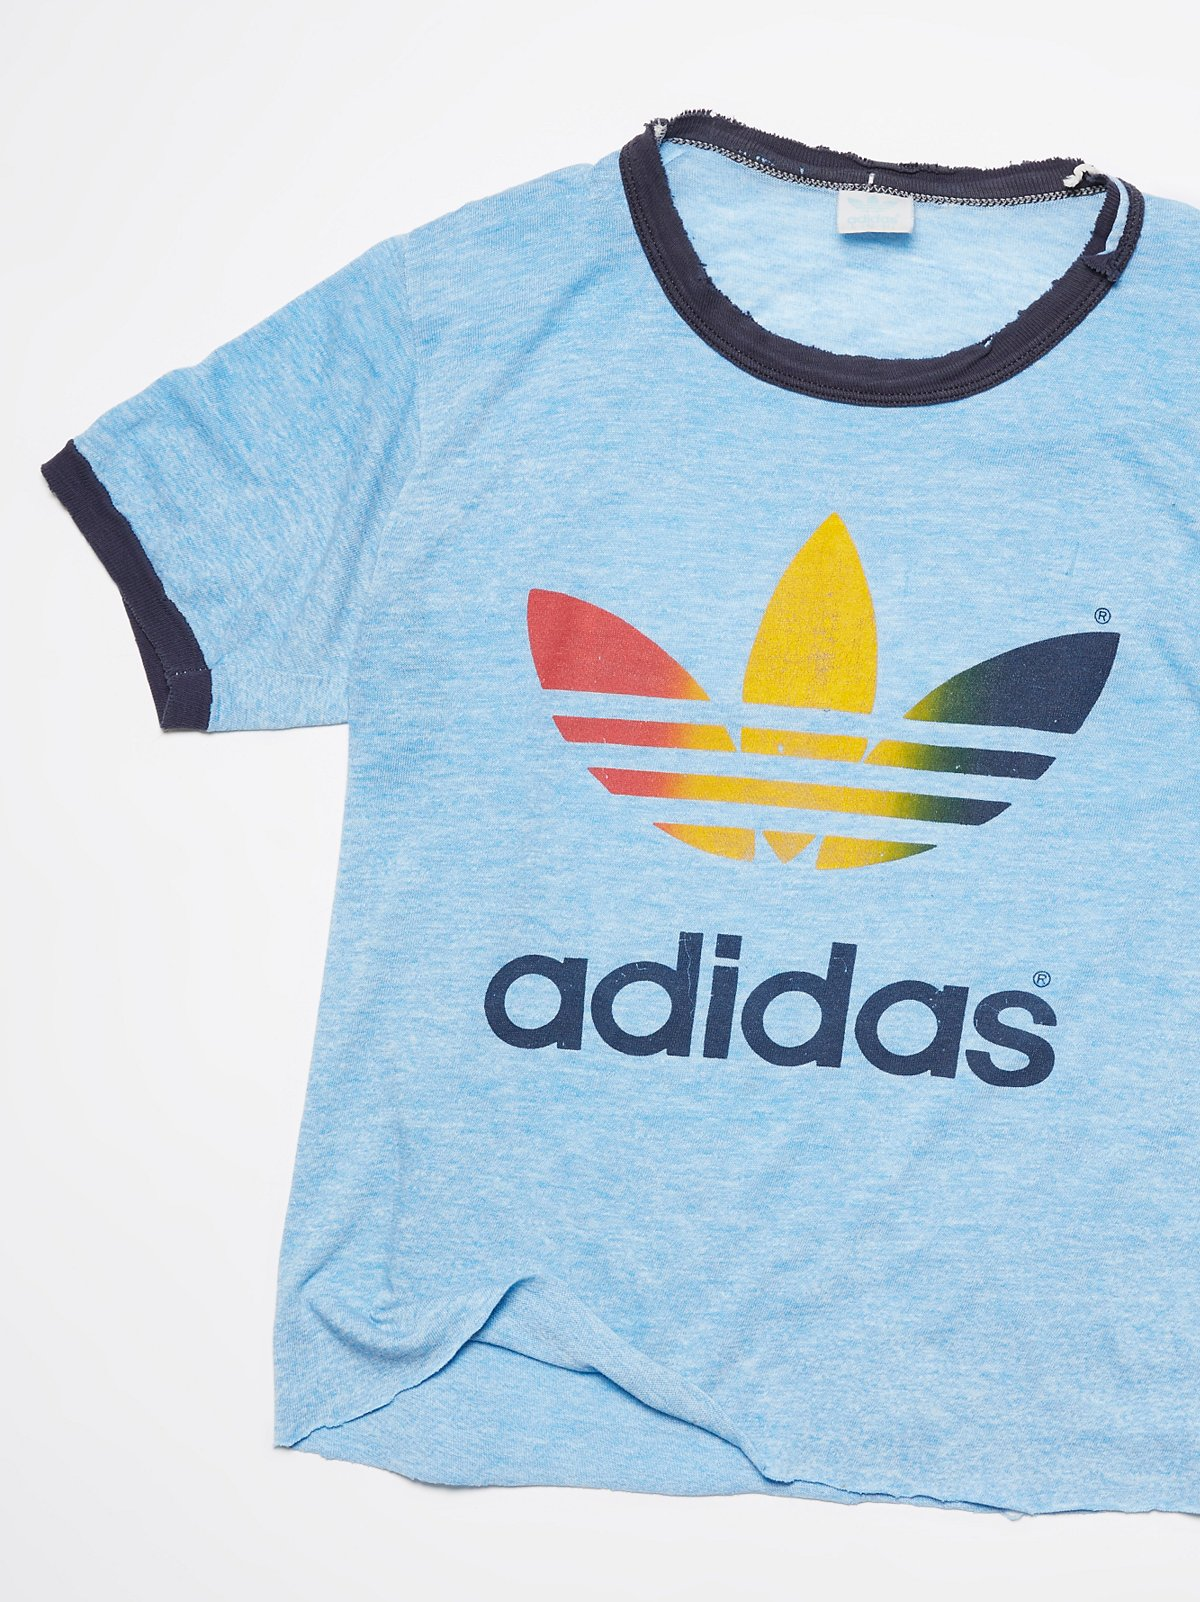 Vintage 1980s Adidas Graphic Tee